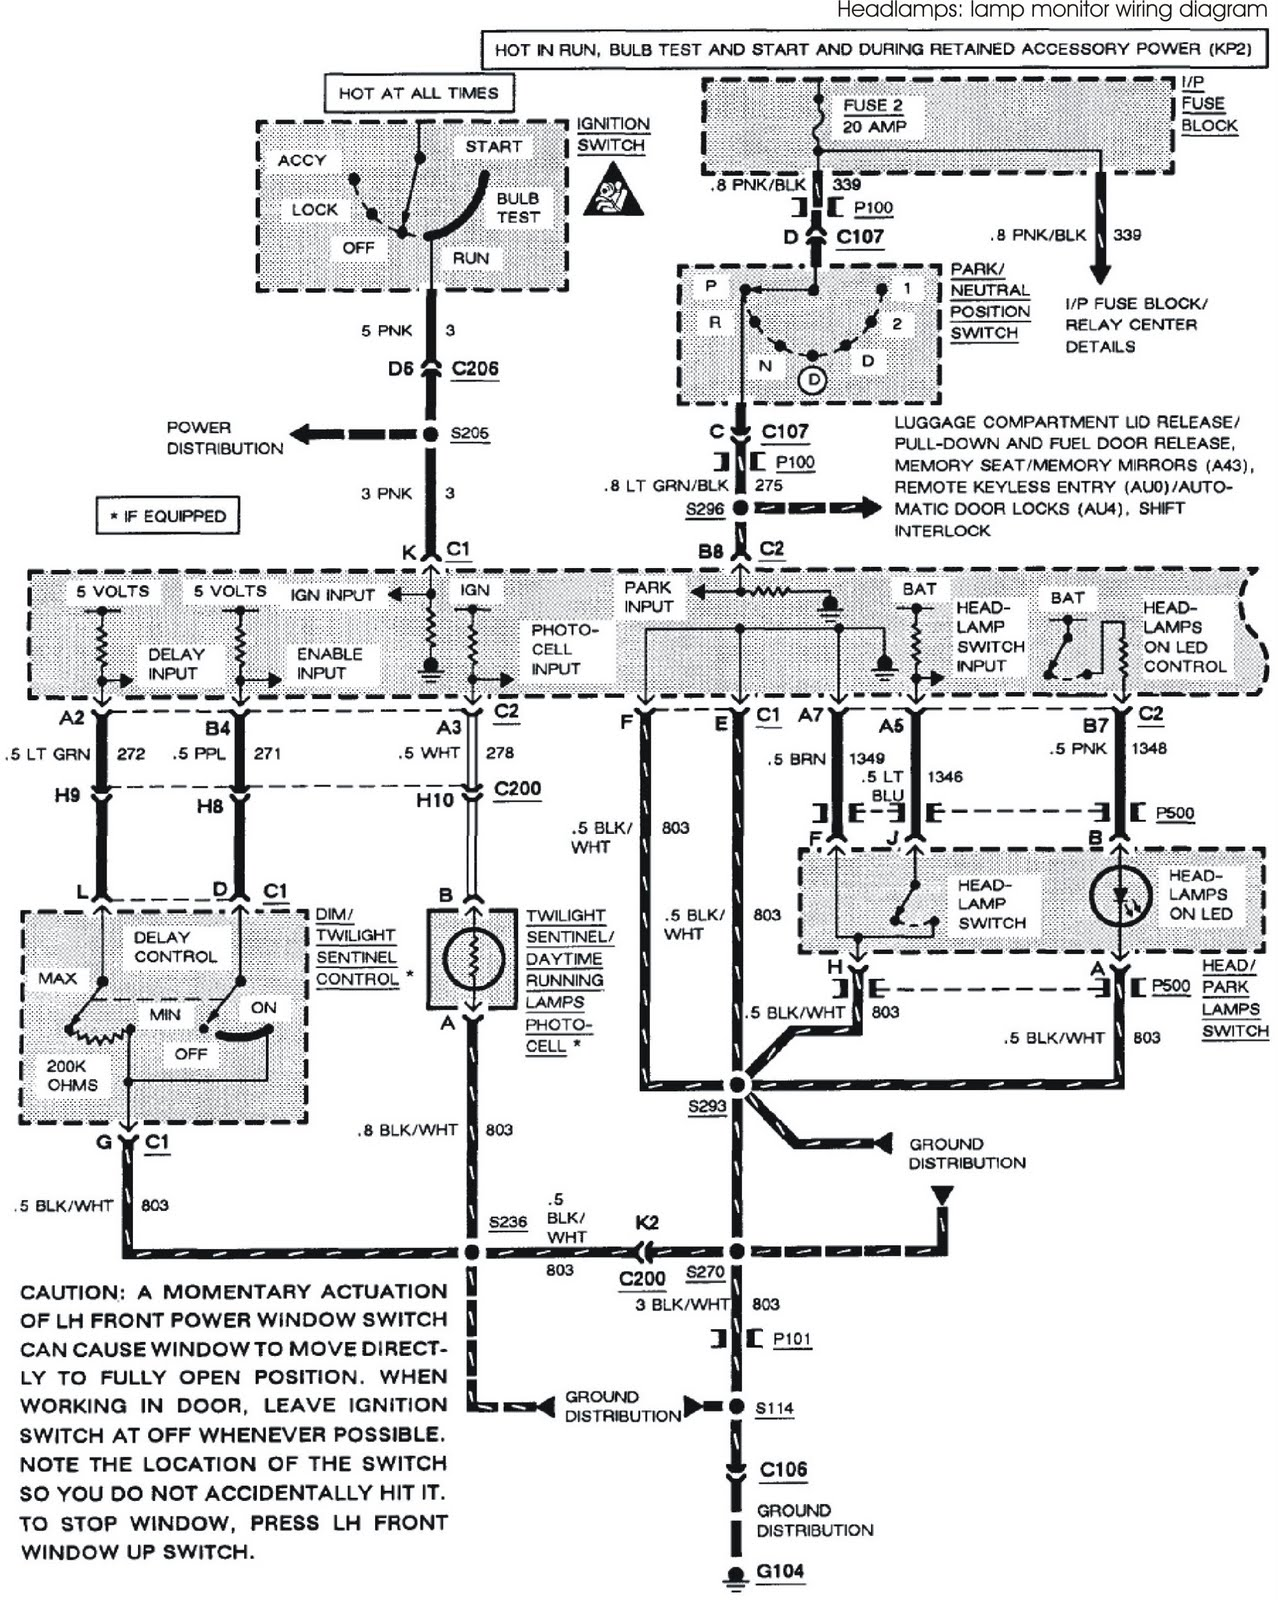 1993 Buick Horn Wiring Worksheet And Diagram 1998 Lesabre Free Park Avenue System Diagrams Headlamps 1980 1992